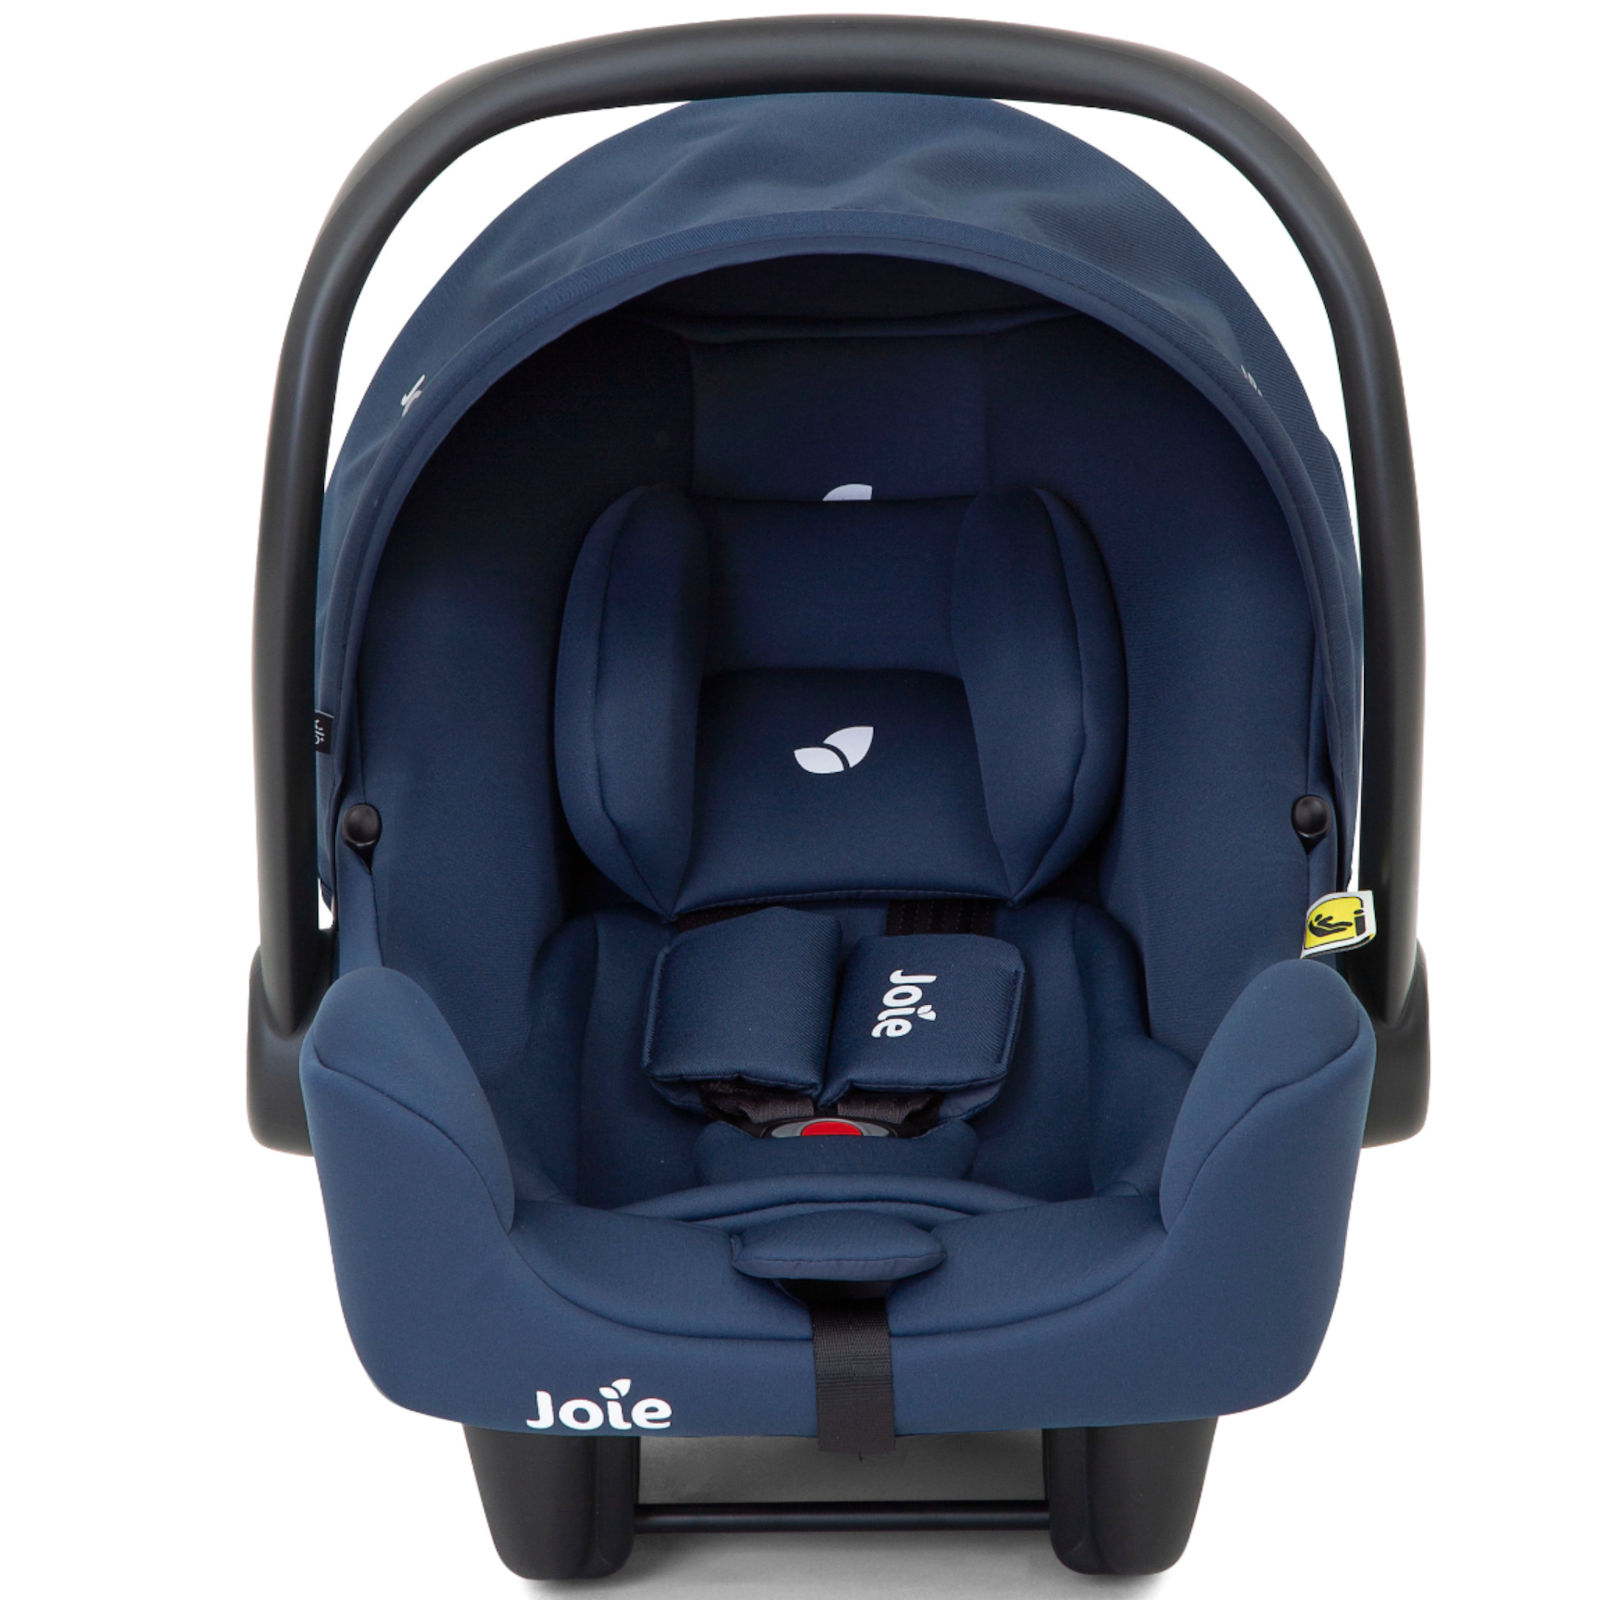 Joie Isofix Car Seat Mothercare Joie Mothercare Pact Travi I Snug Travel System With